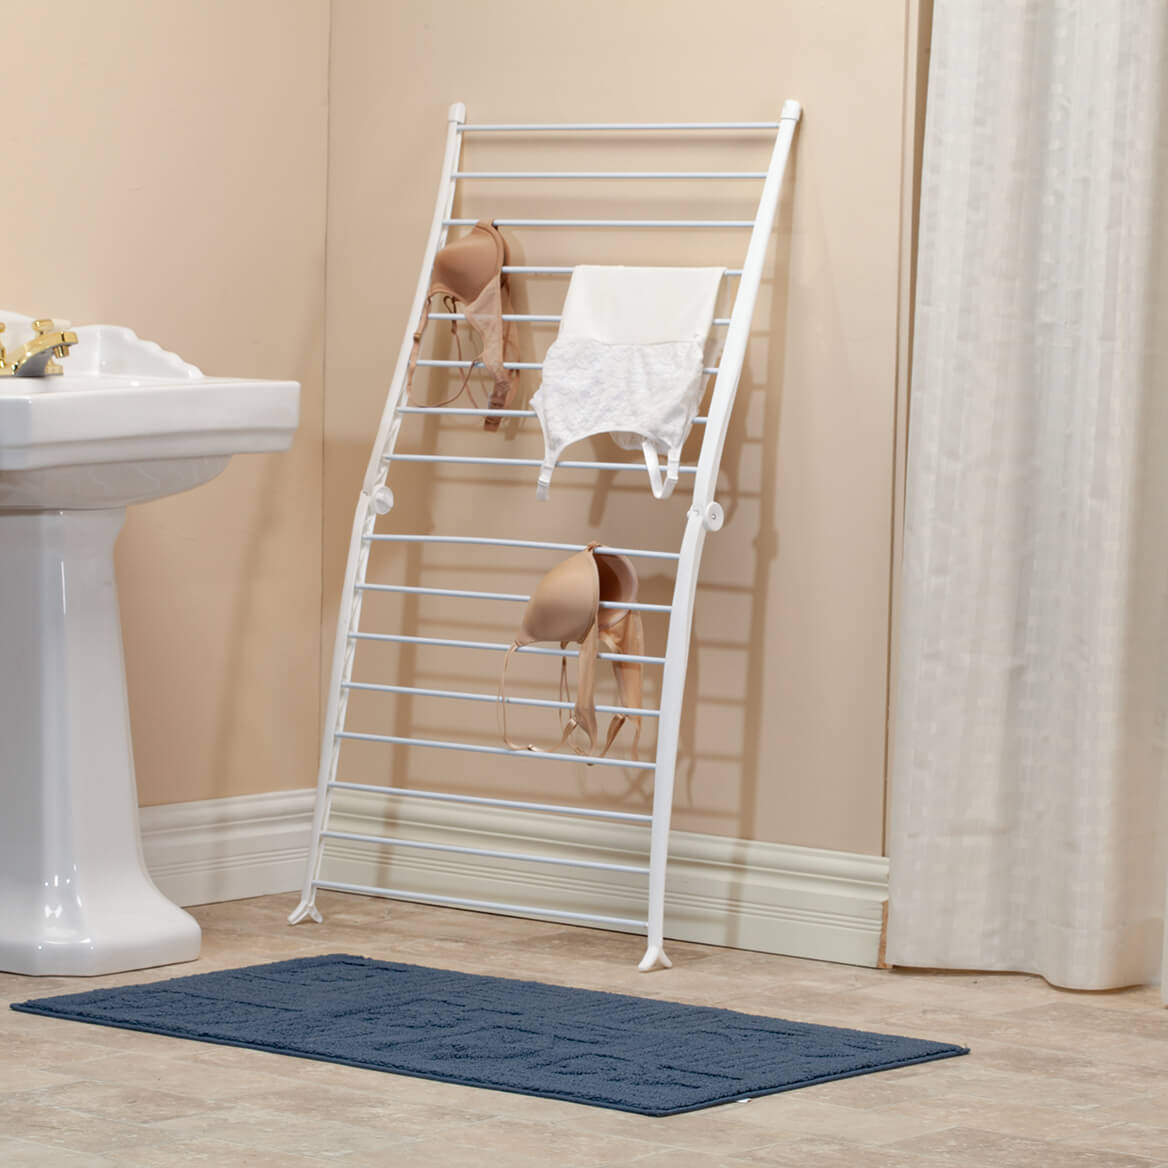 Drying Rack Wall Lean or Two Sided Fold-370518